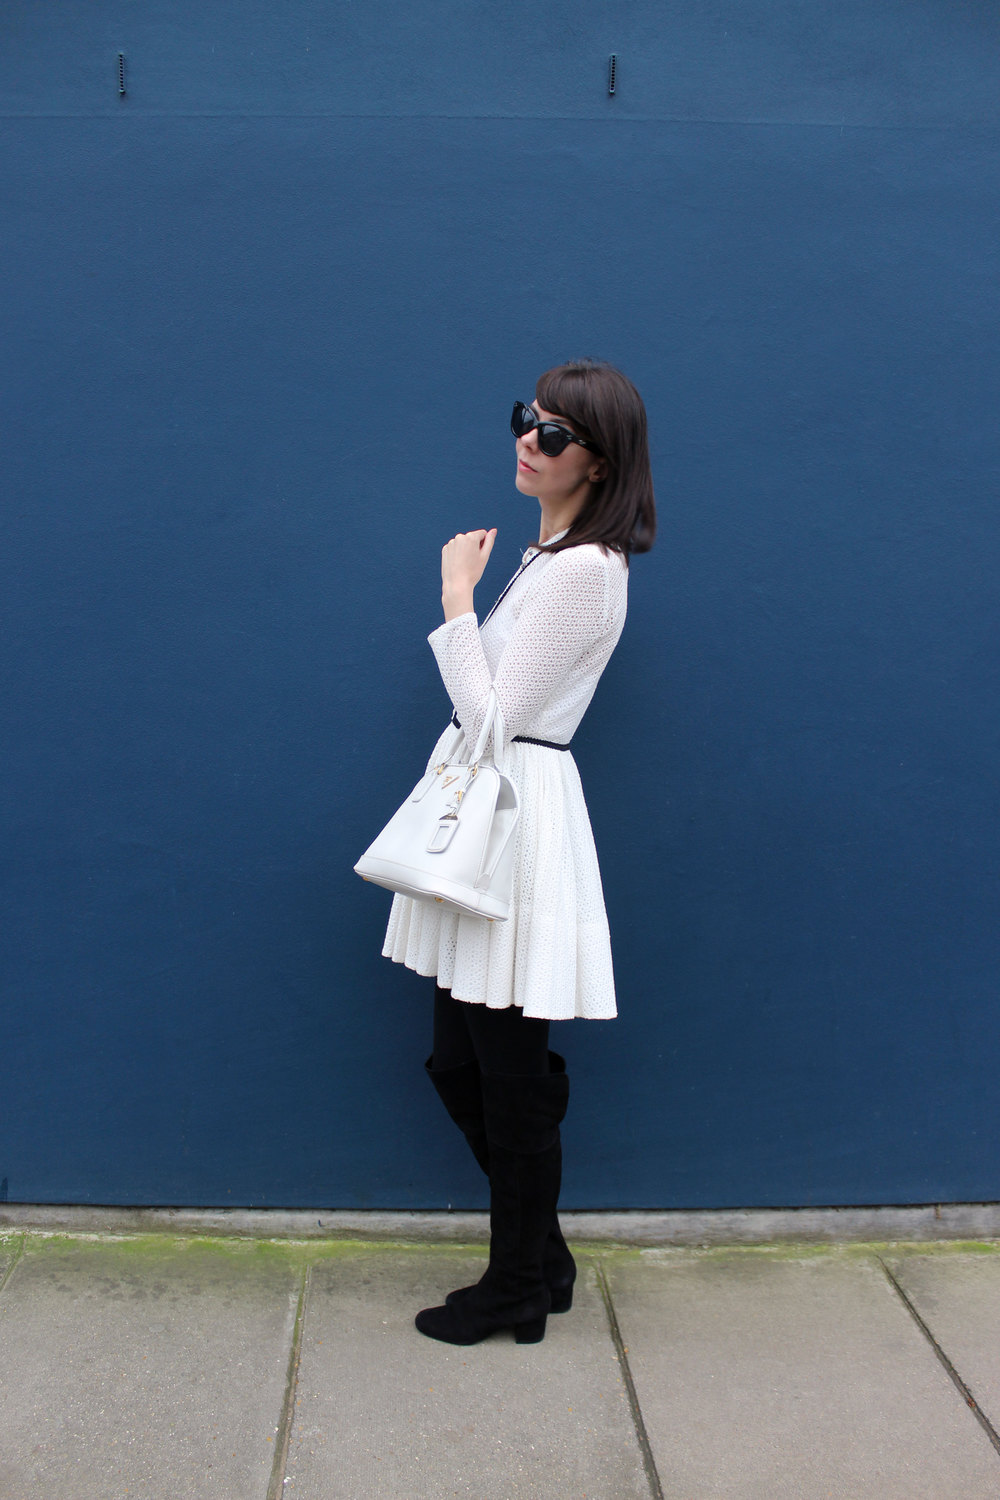 Wearing a white lace Maje dress and suede over the knee boots in Notting Hill.